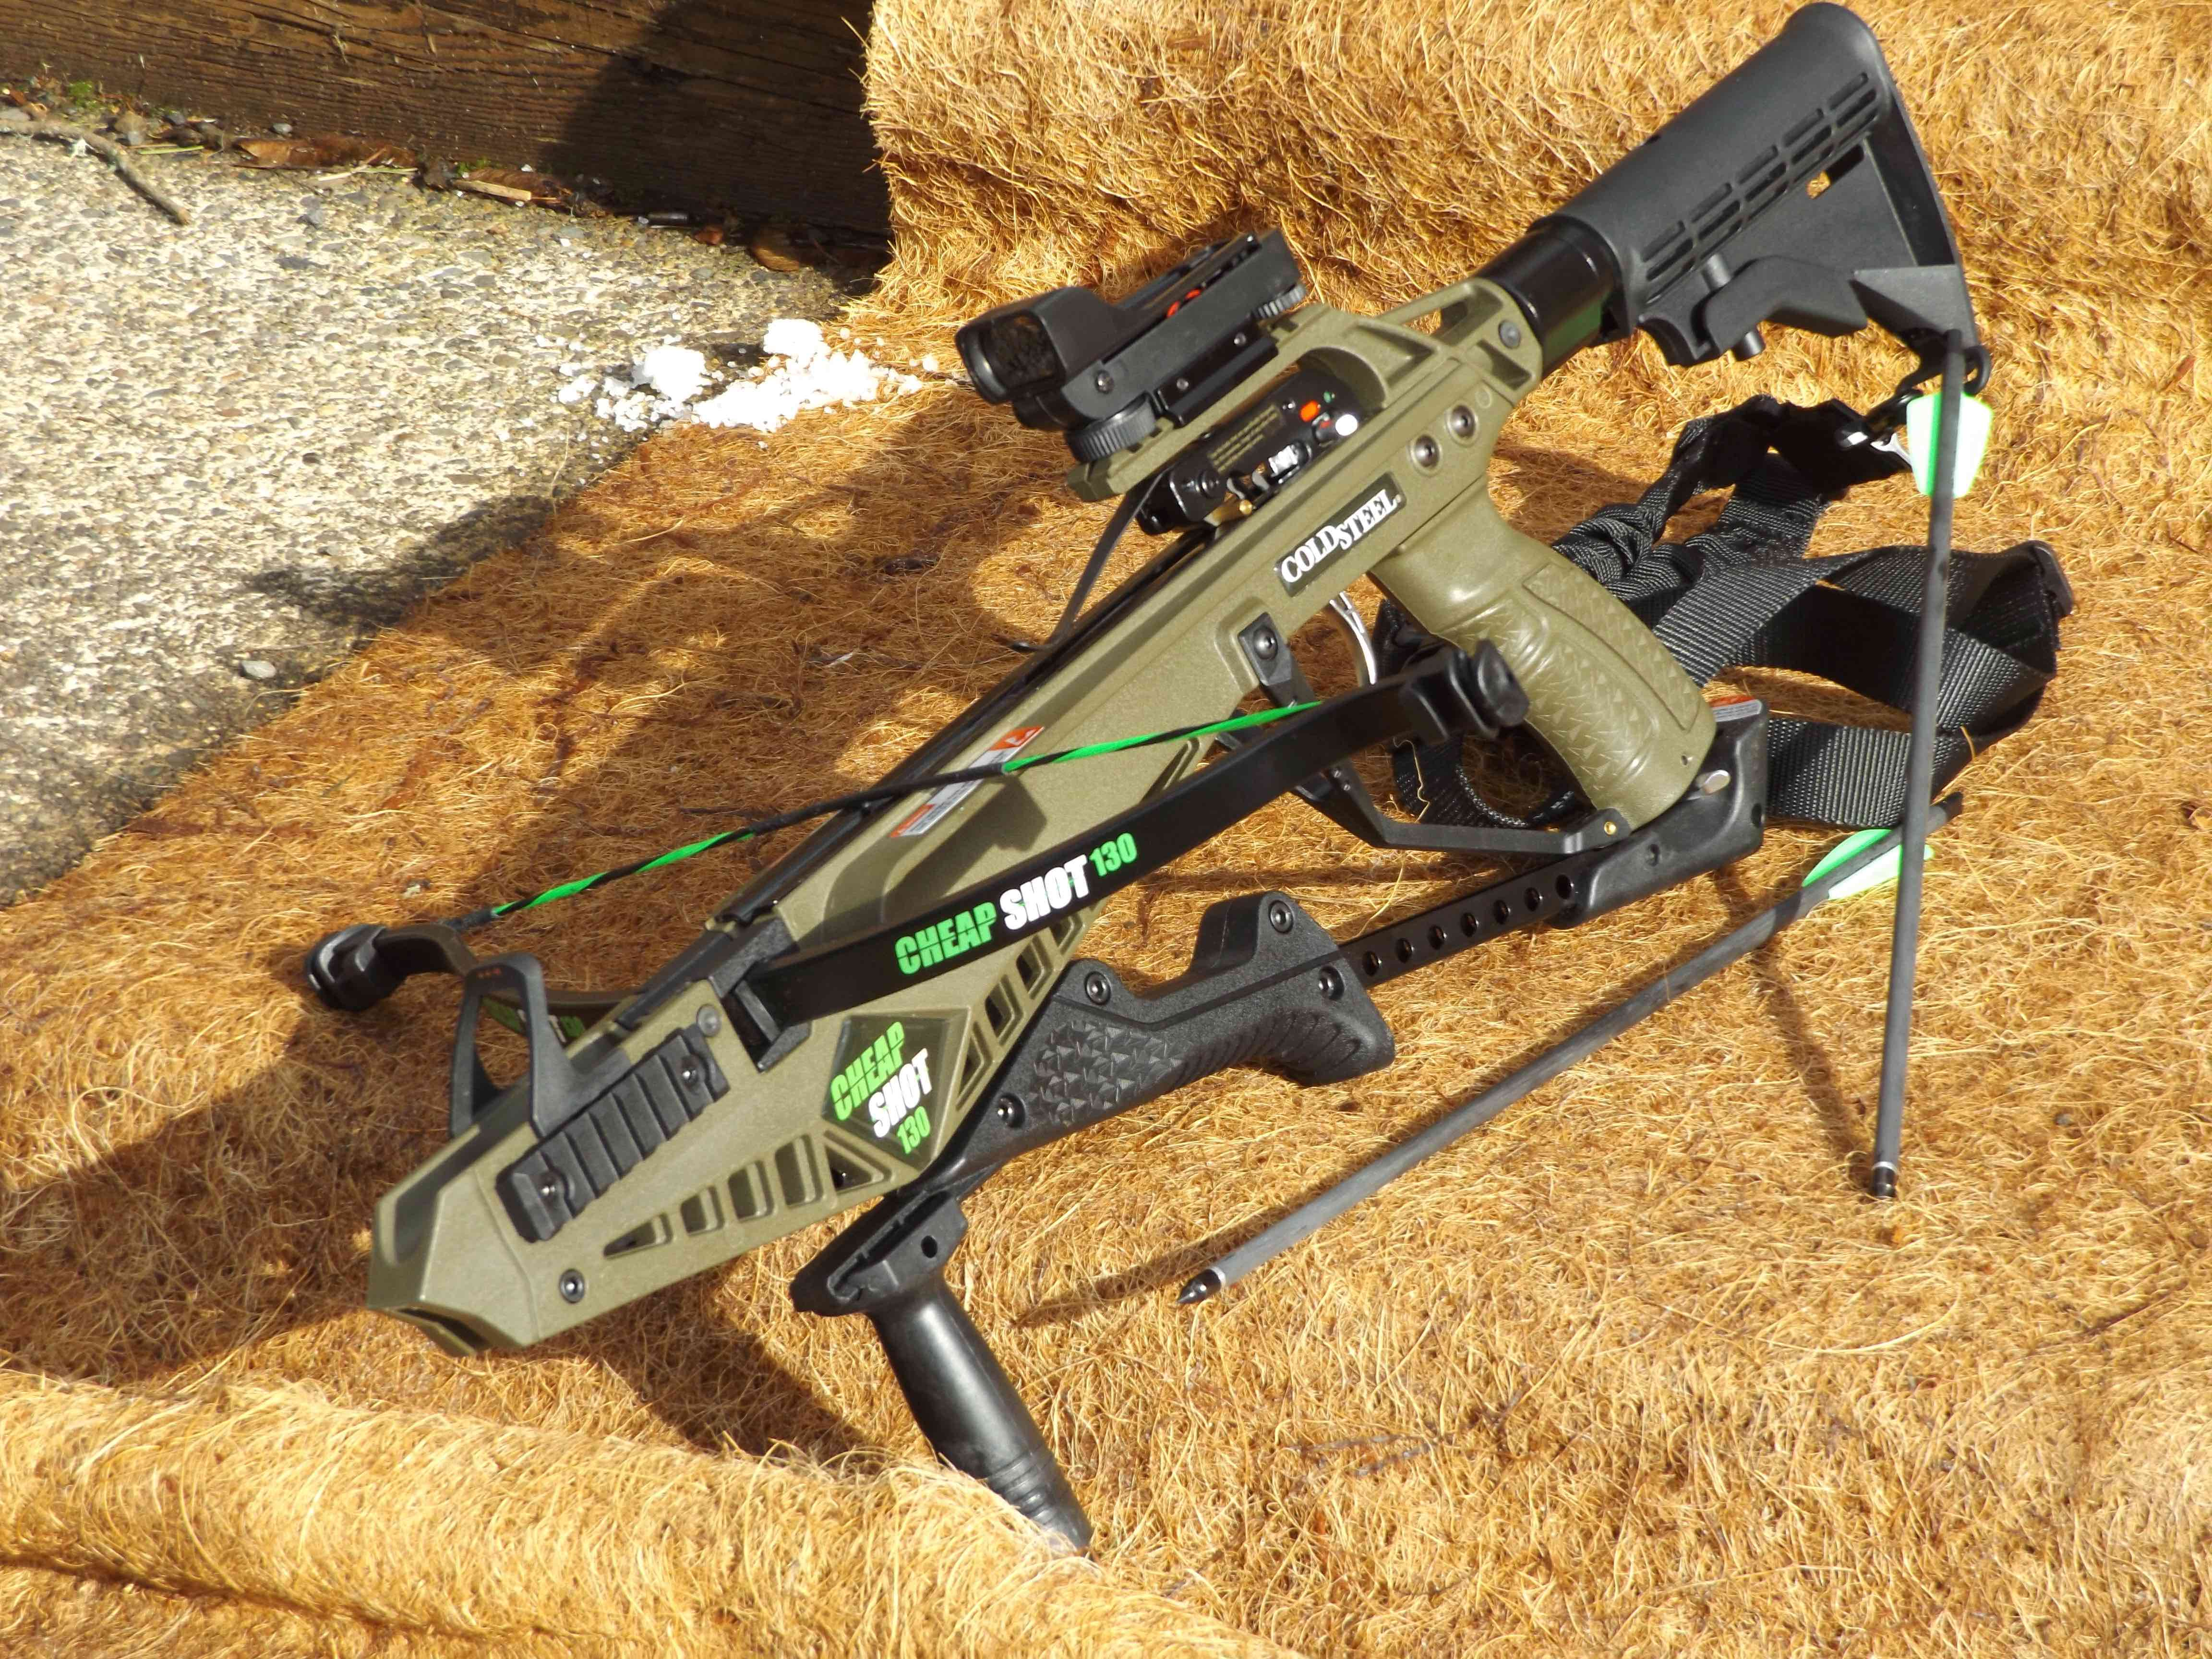 Cold Steel Cheap Shot 130 crossbow, has a draw weight of ...